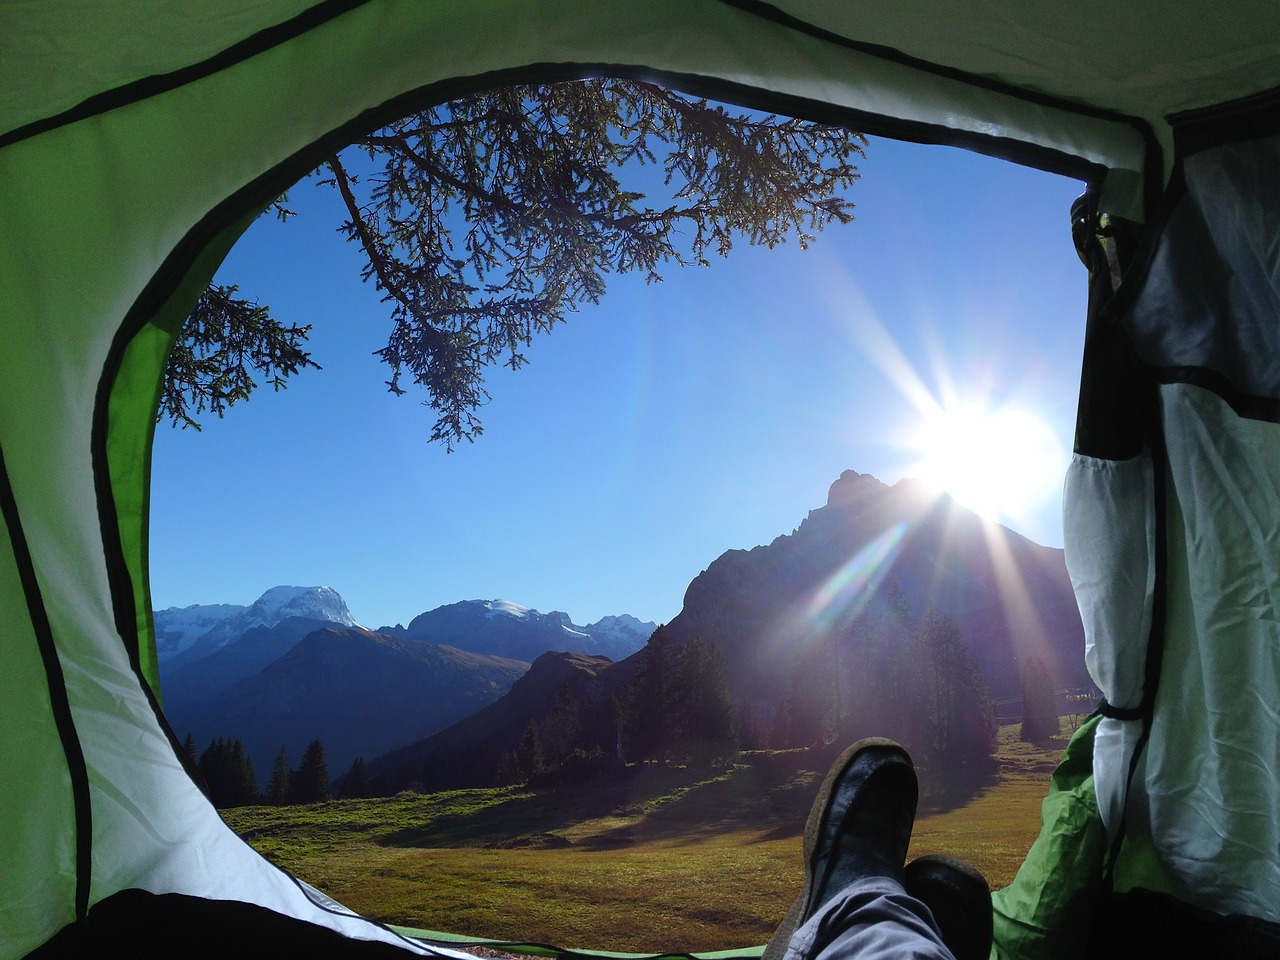 view of the mountains from a tent